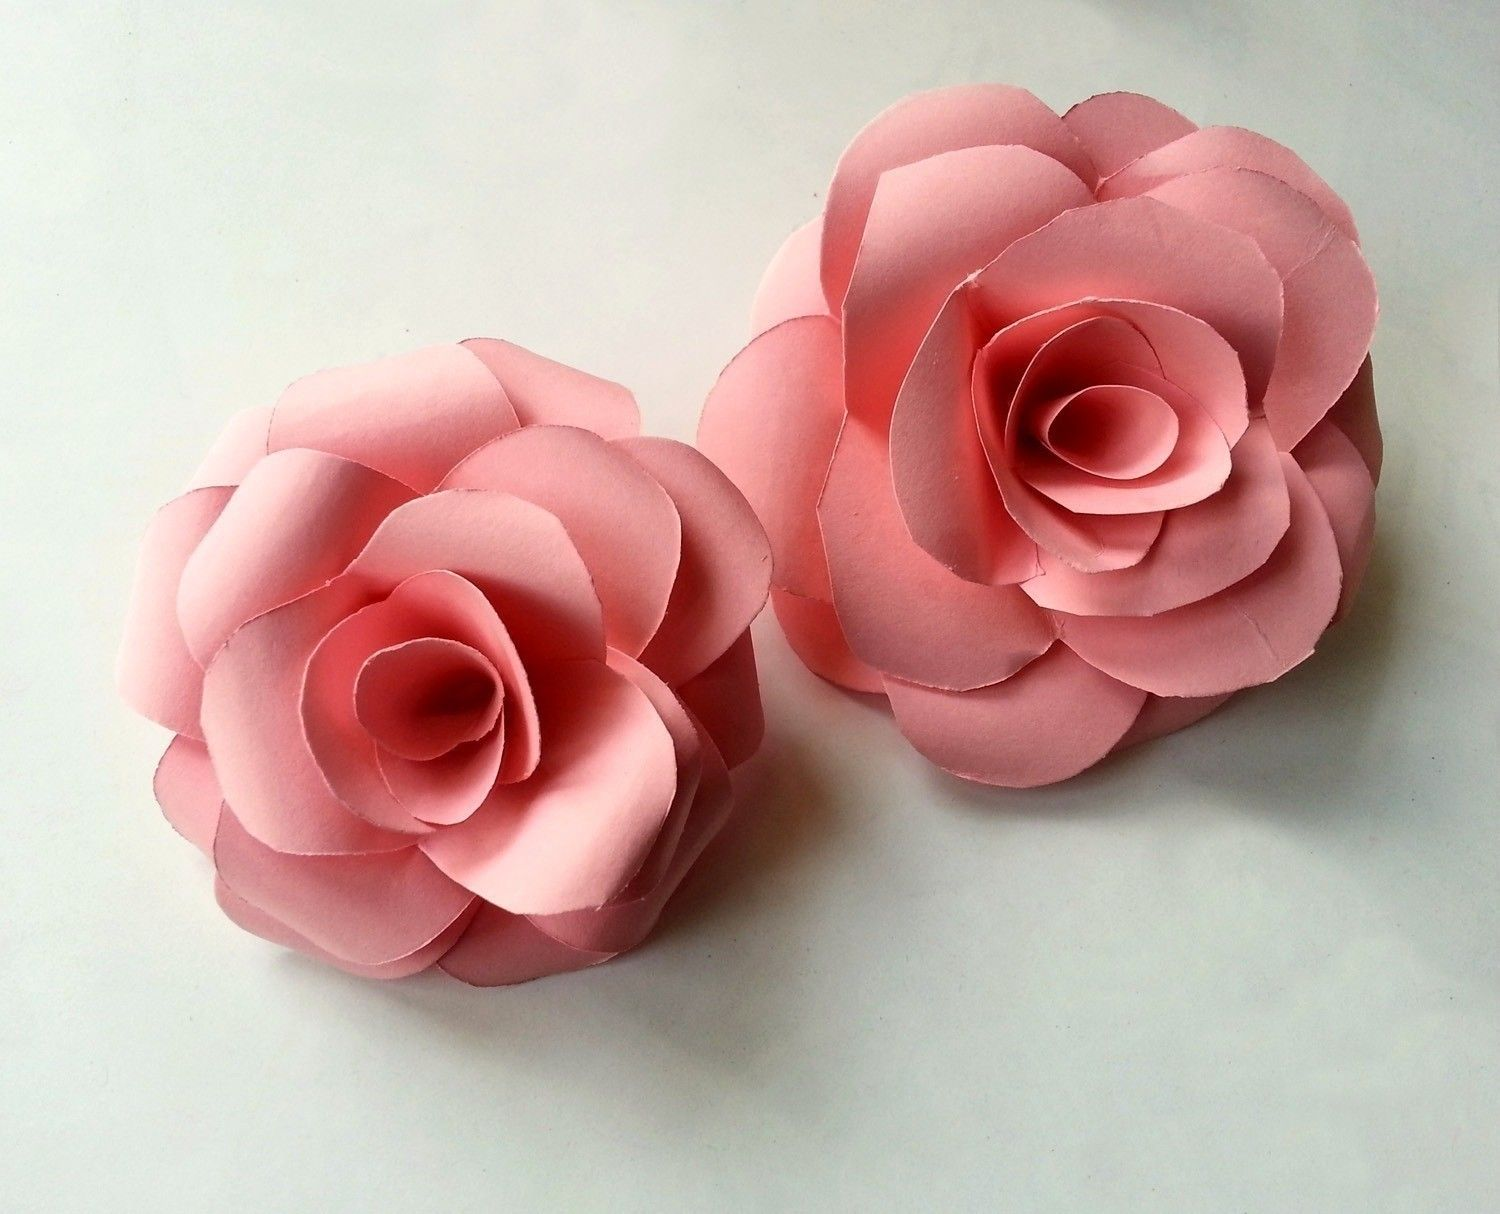 Fun Paper Craft Free Tutorial With Pictures On How To Make A Flowers Rosettes In Under 10 Minutes By Pape Paper Roses Tutorial Paper Roses Diy Paper Roses